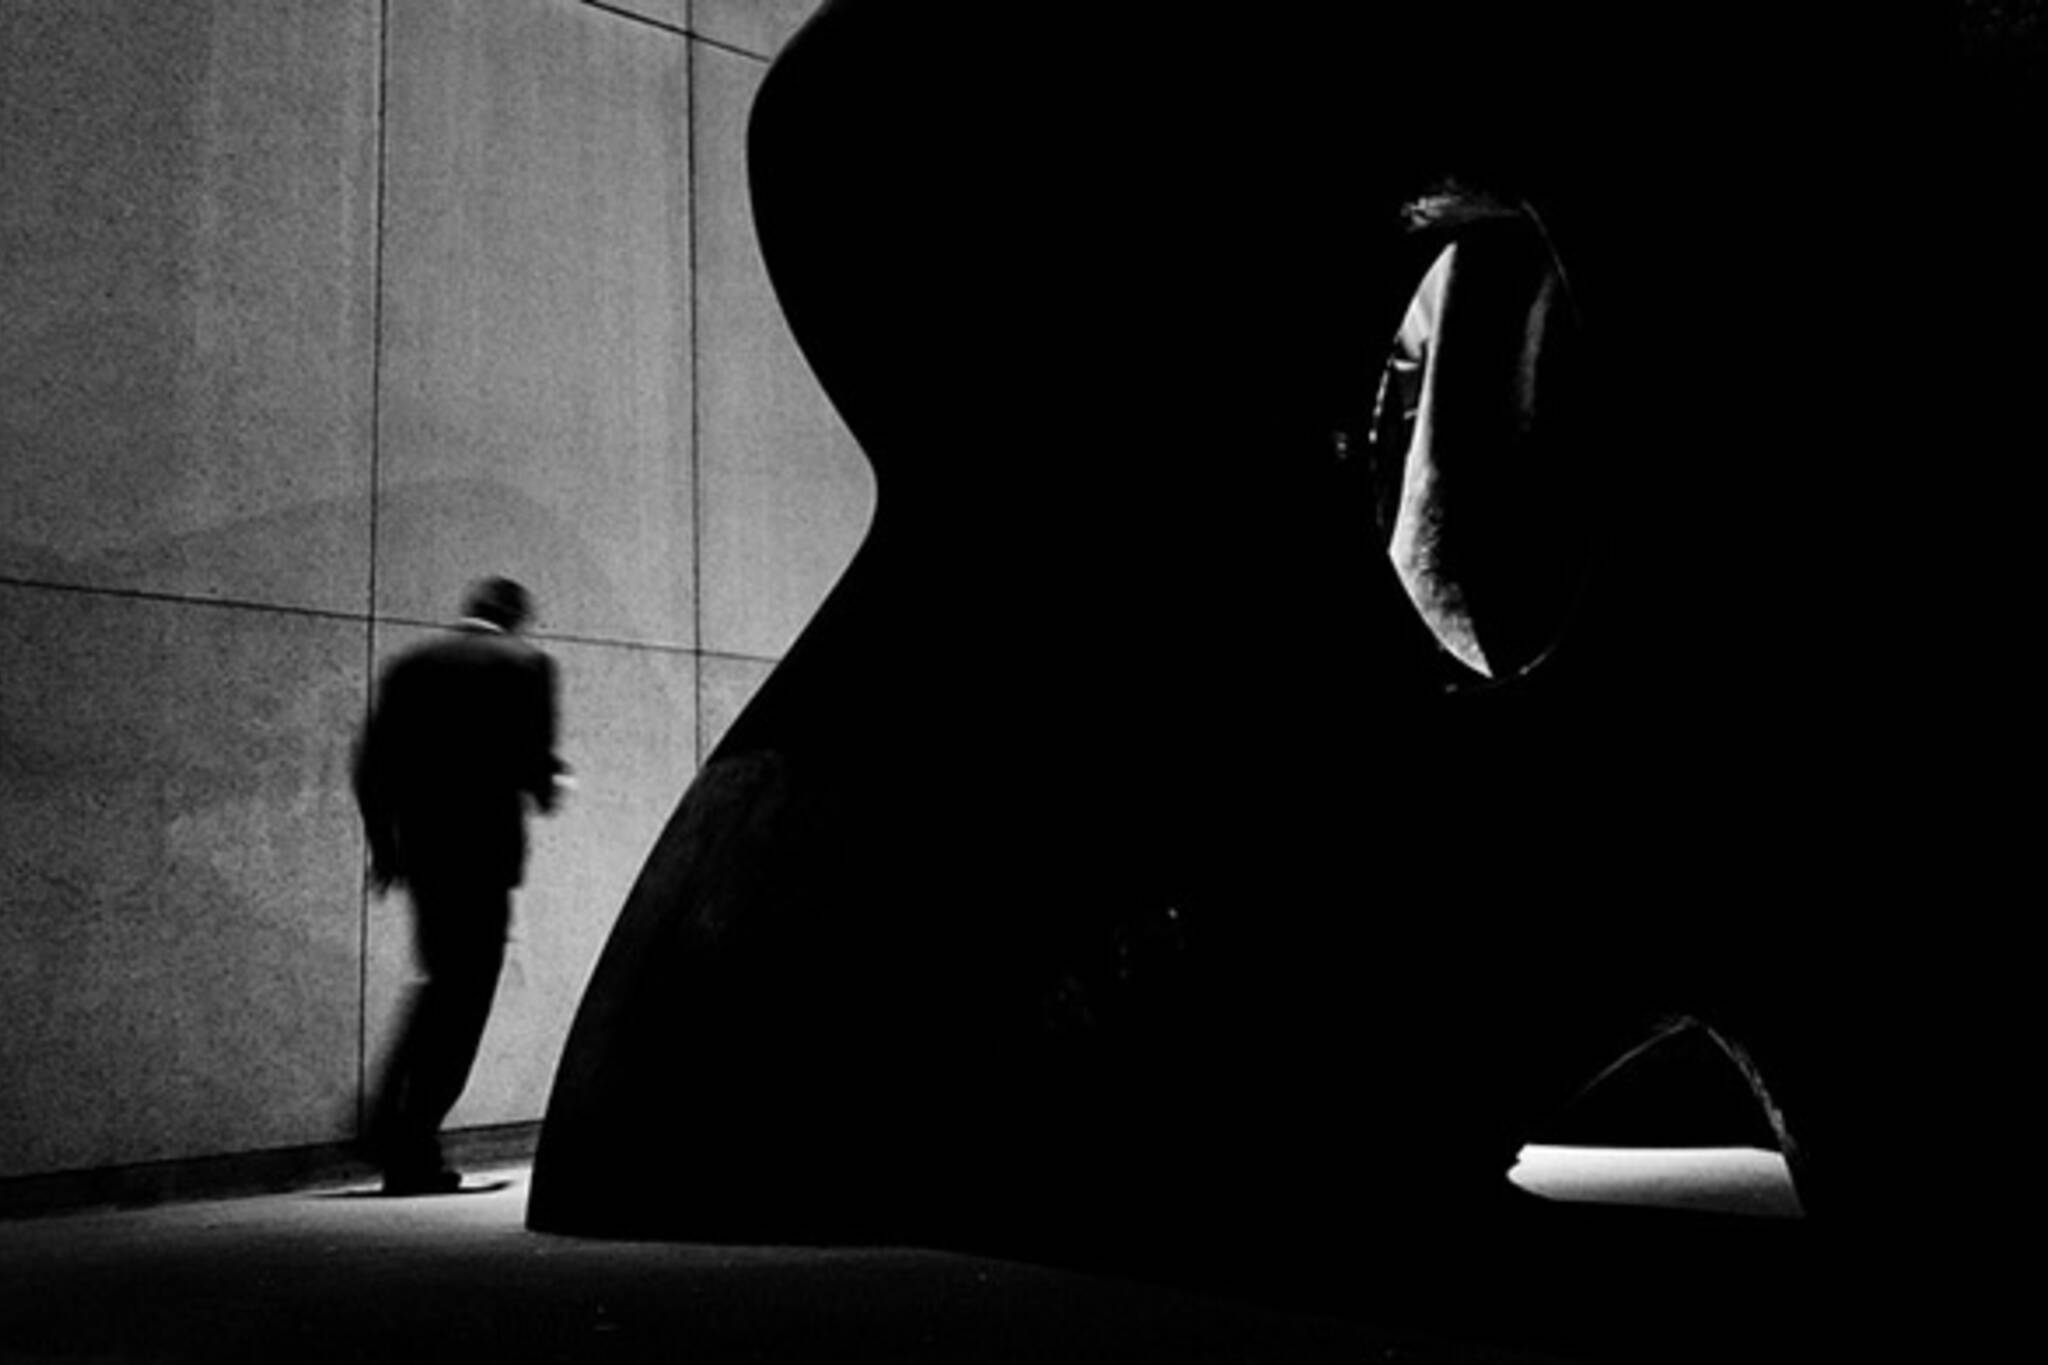 shadow and figure